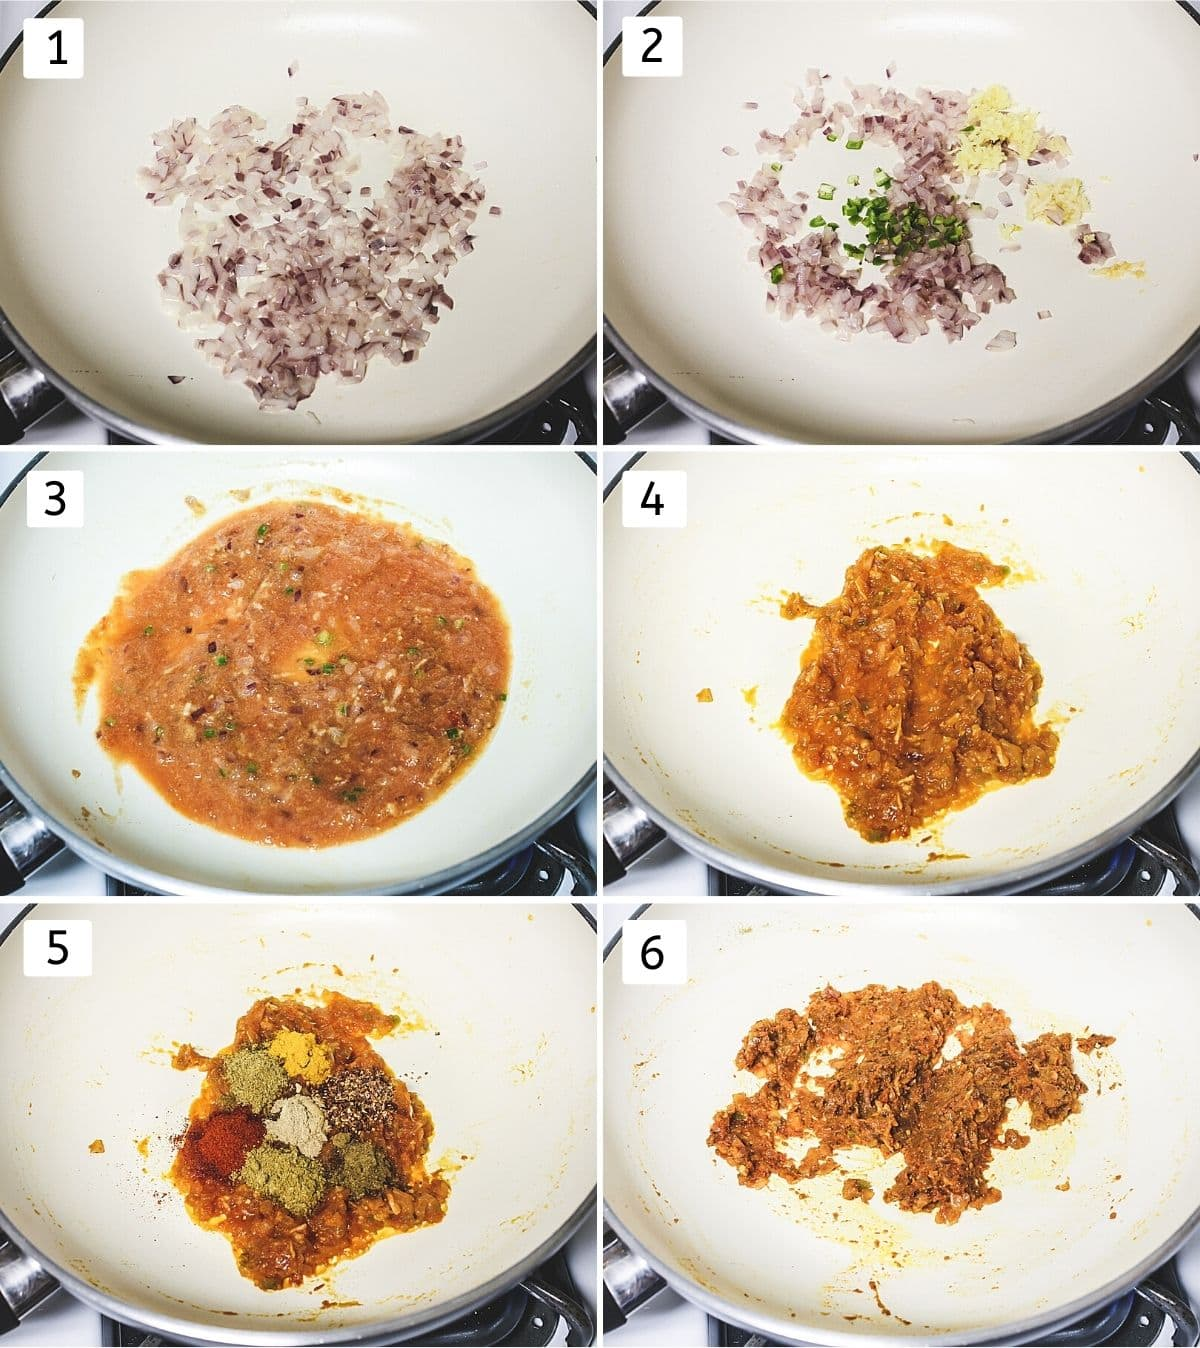 Collage of 6 steps showing adding onion, cooking, adding tomato puree, cooked, adding spices, mixed.